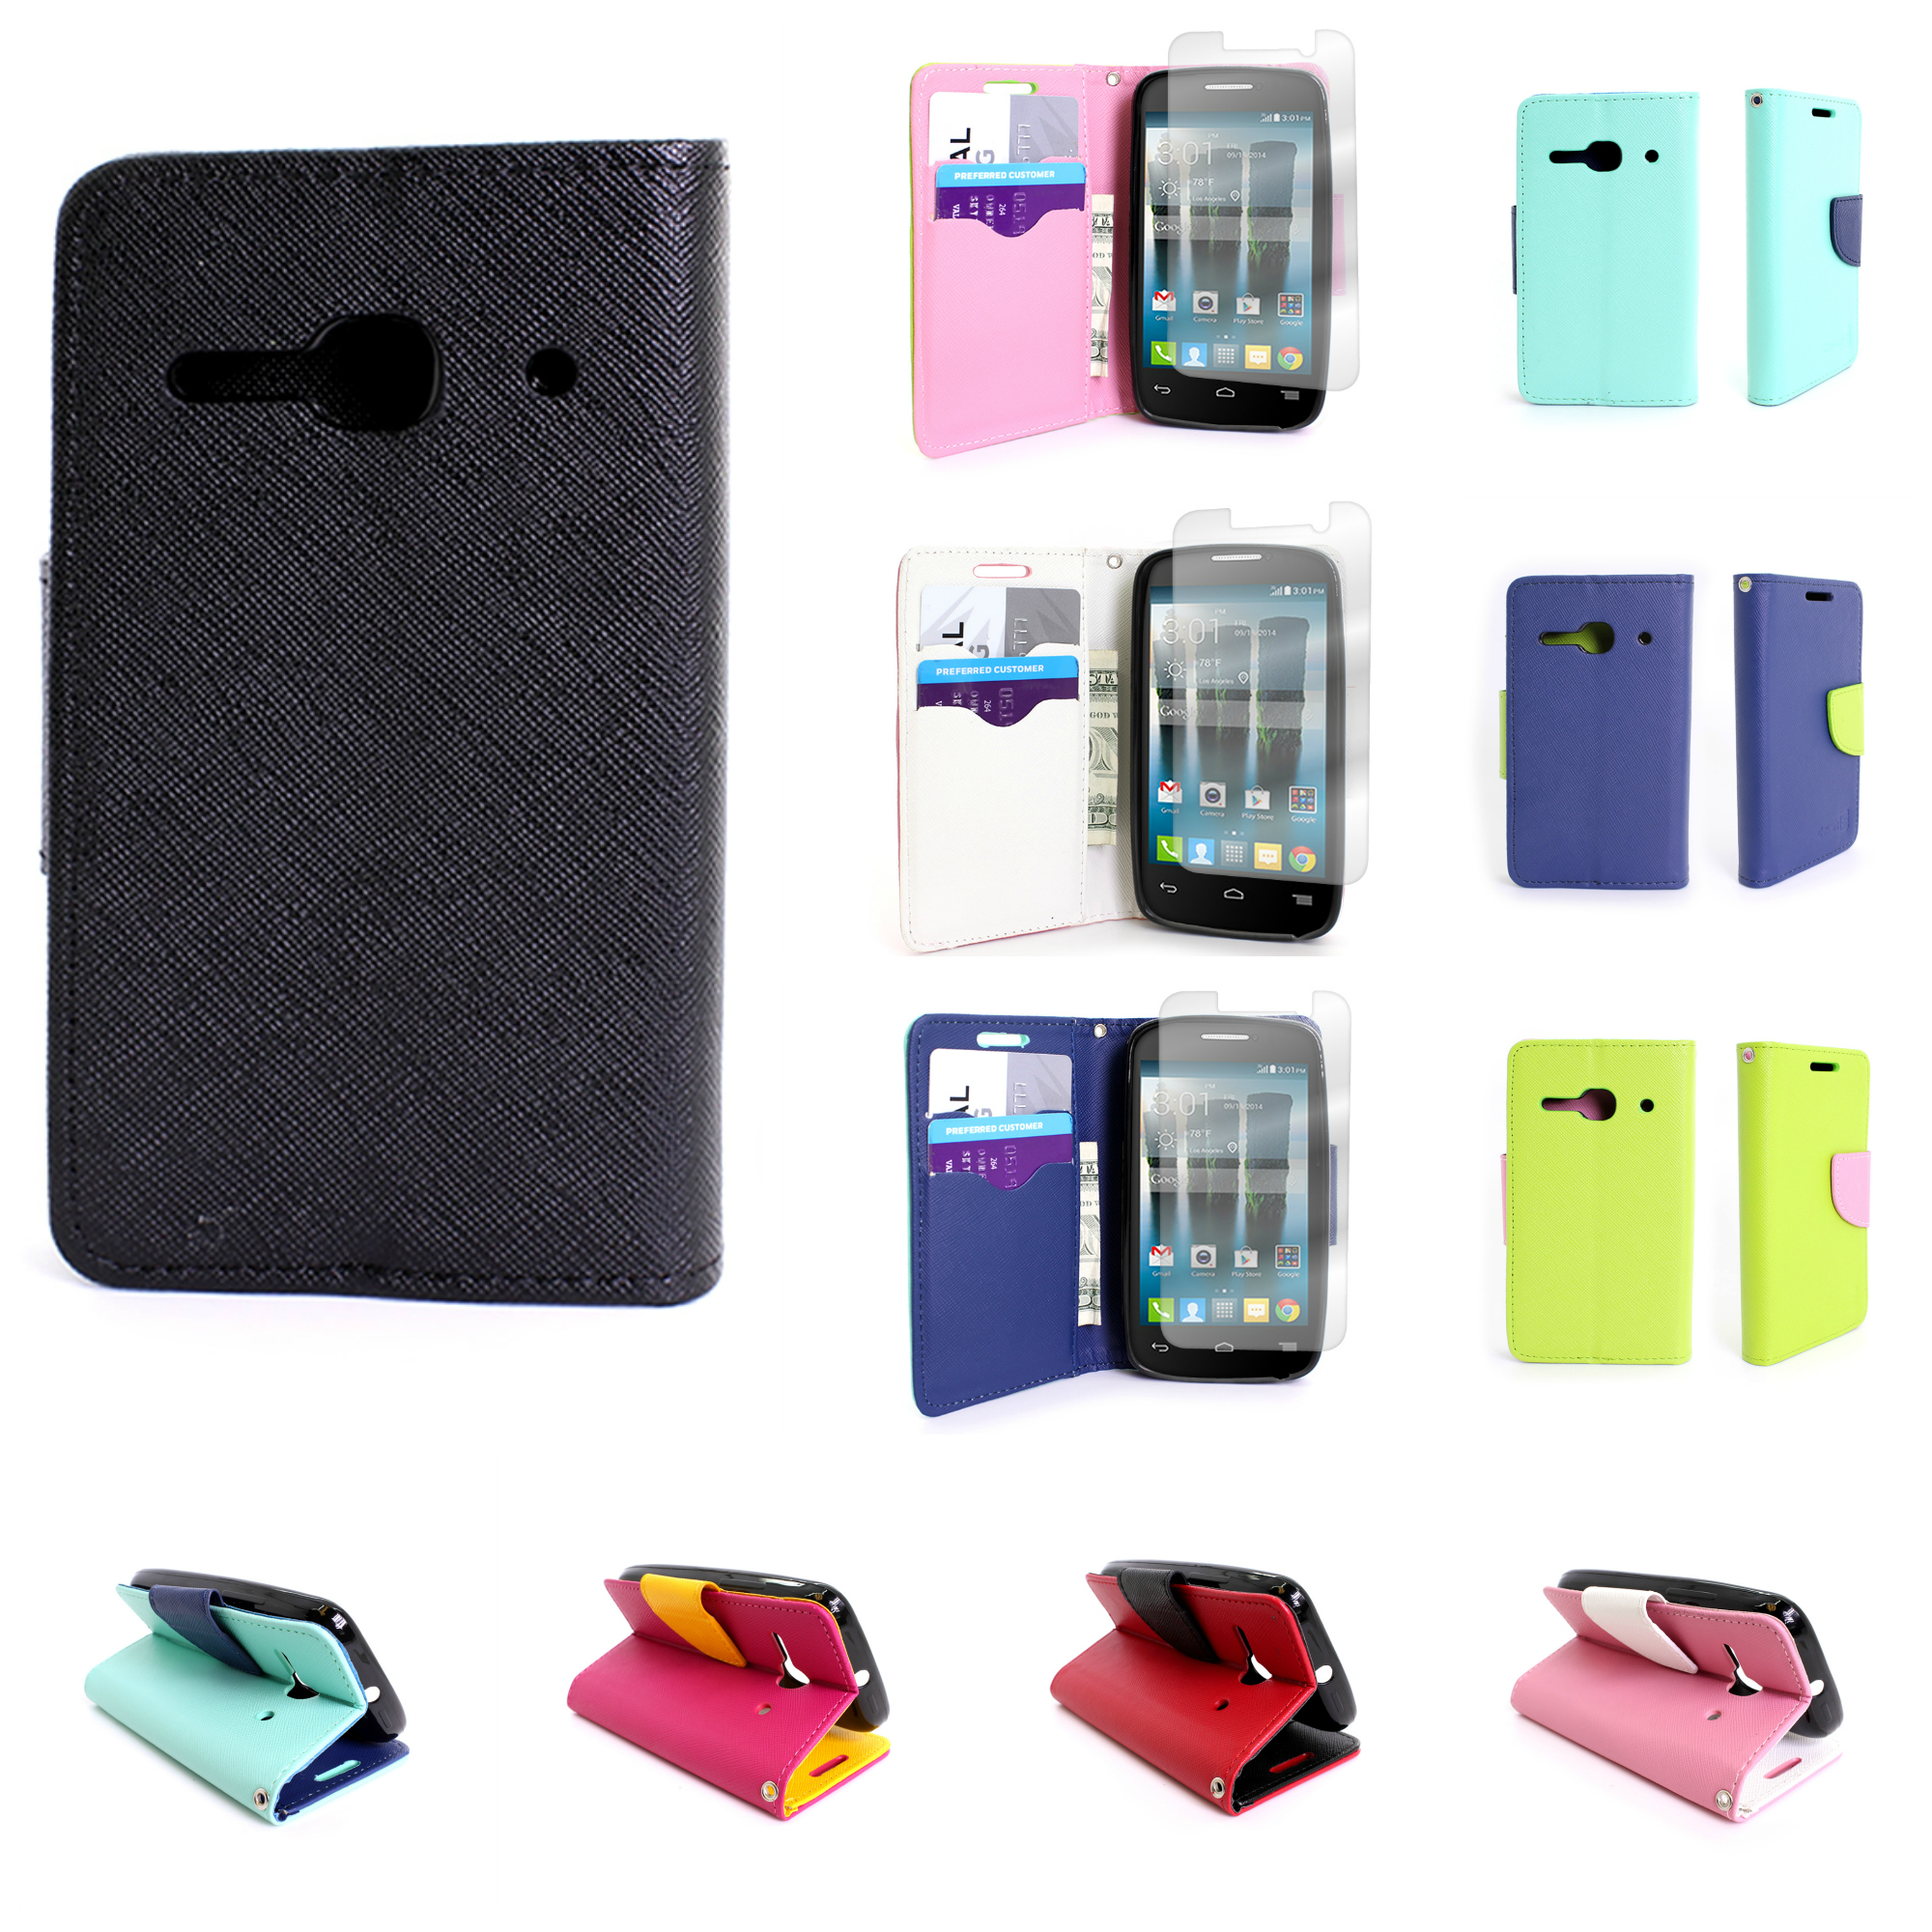 promo code 97394 d1663 Details about Wallet Pouch Stand Phone Cover Case for Alcatel One Touch  Evolve 2